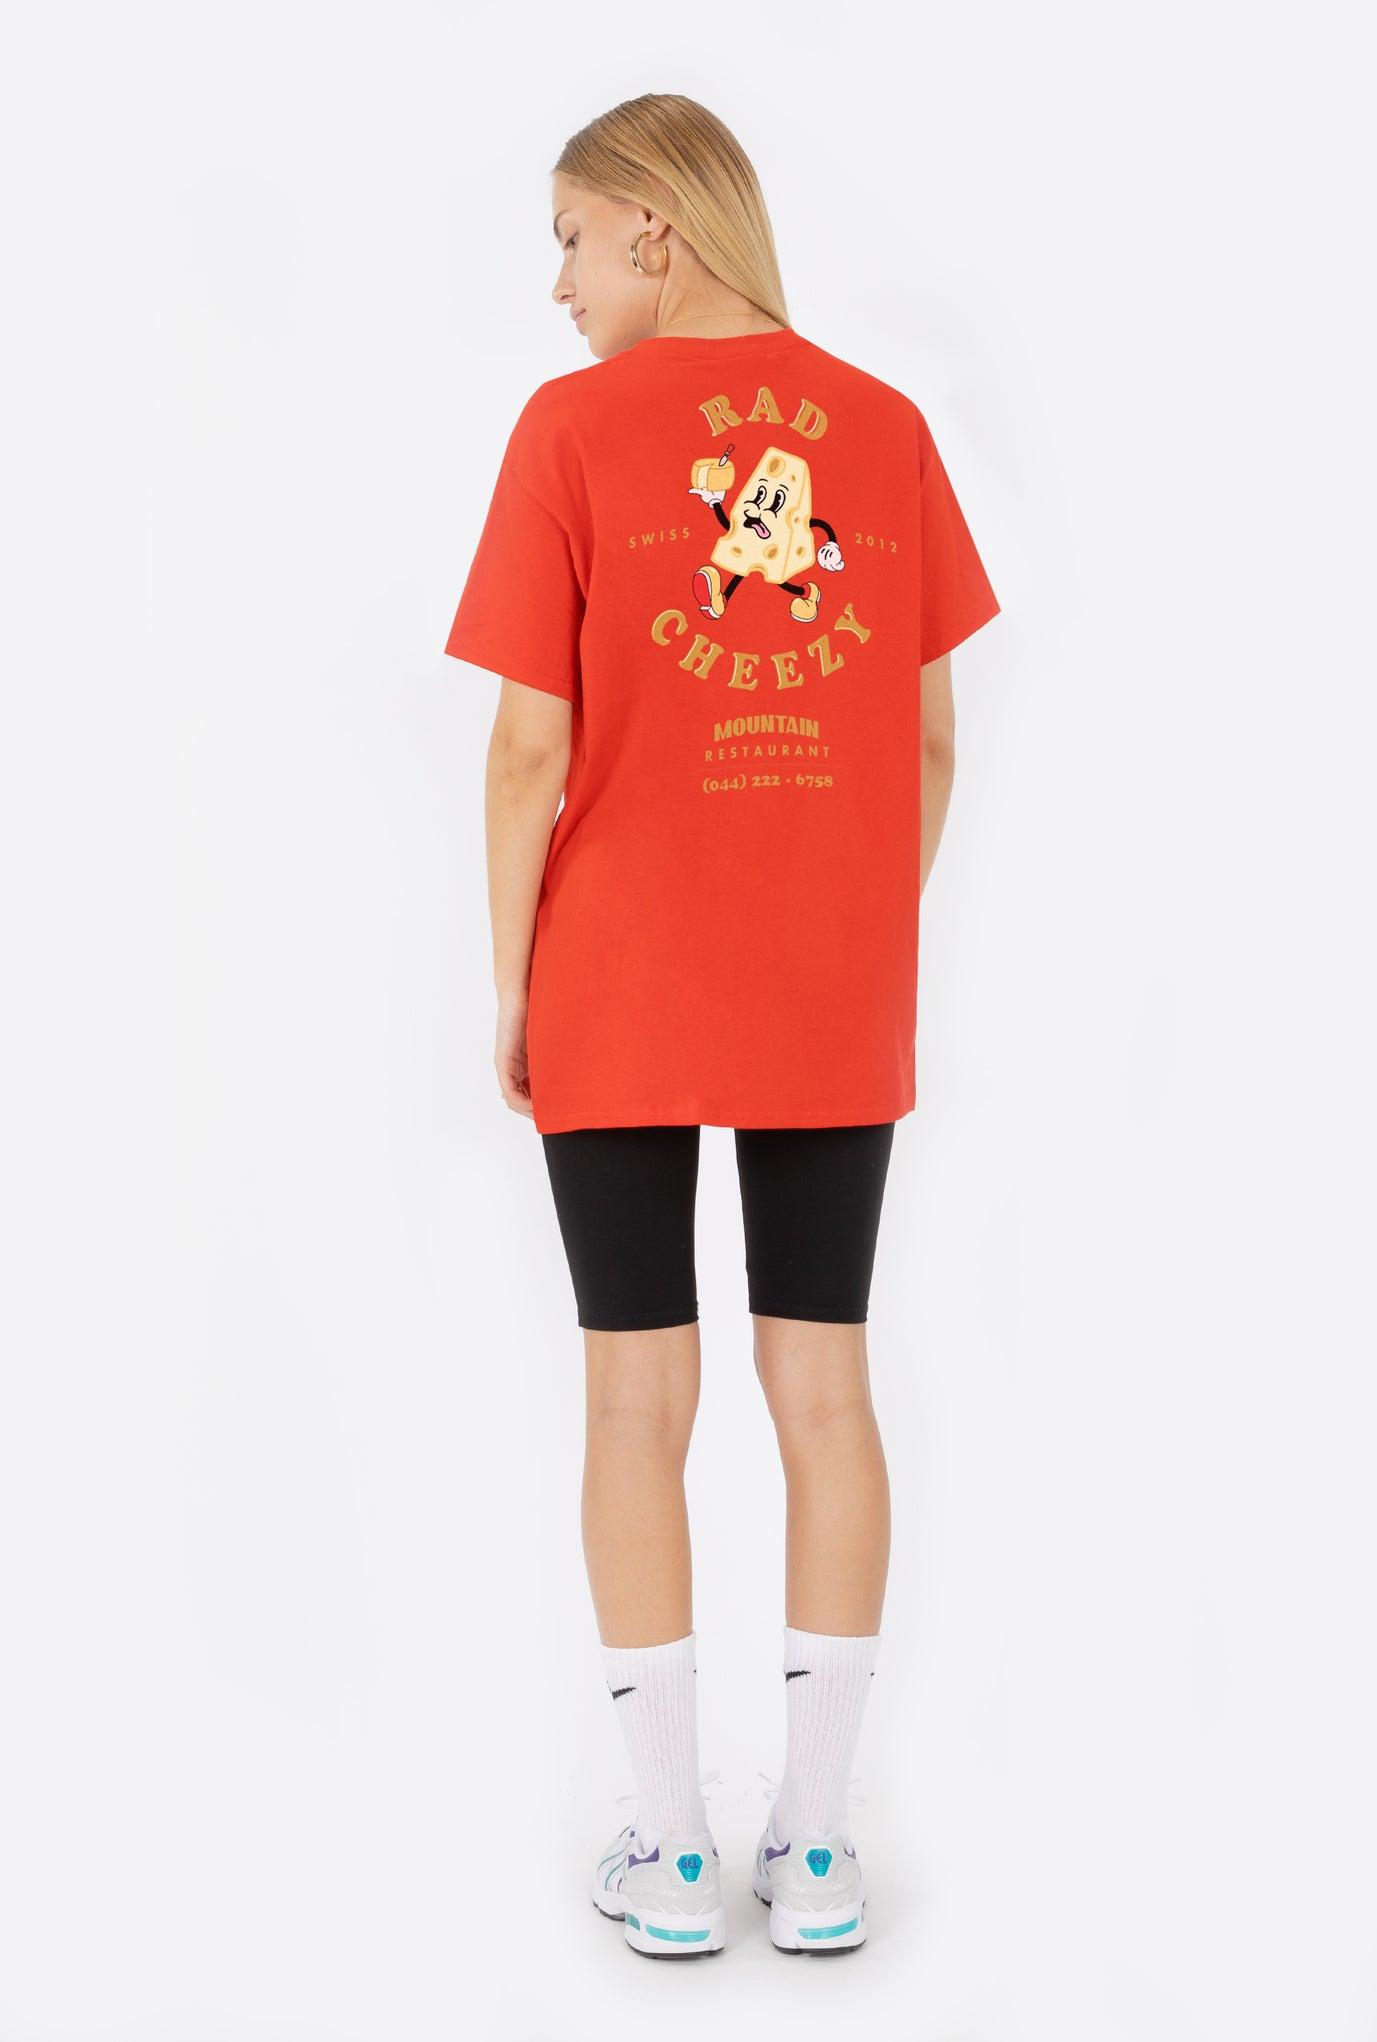 T-Shirt S/S Red Rad Mountain Restaurant